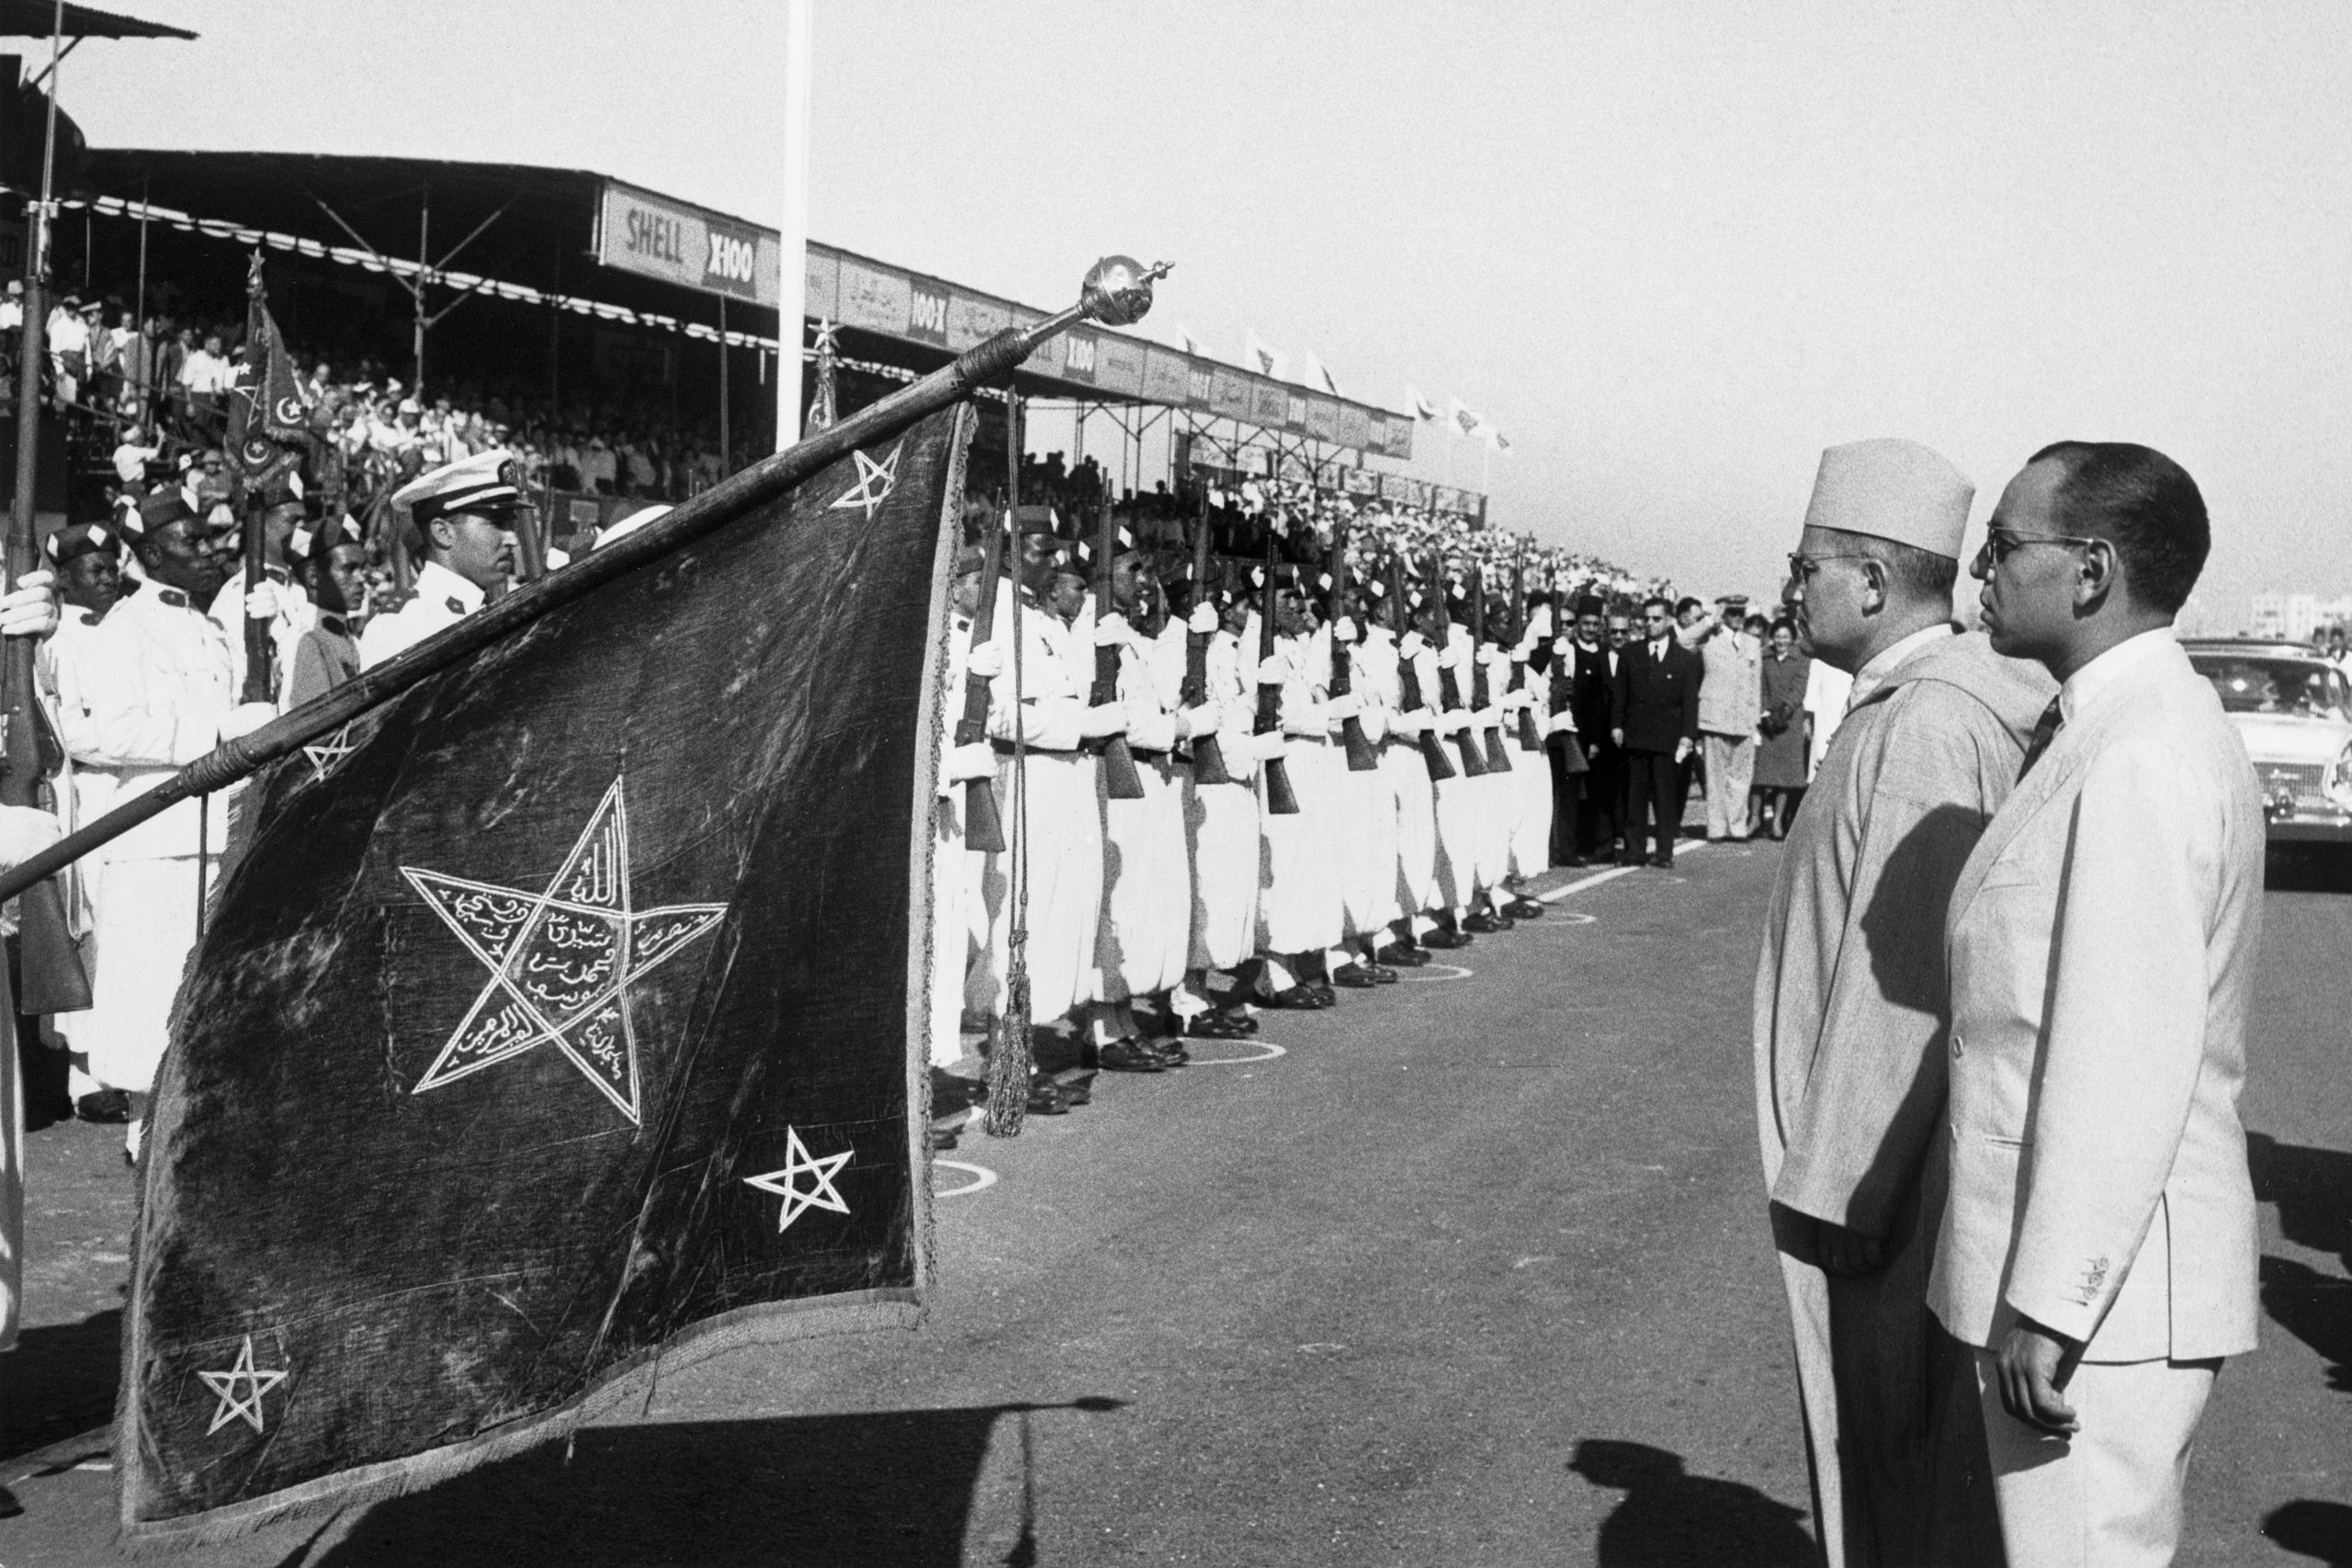 Sultan Mohammed V and the future King, Hassan II, officially open the circuit before the race.